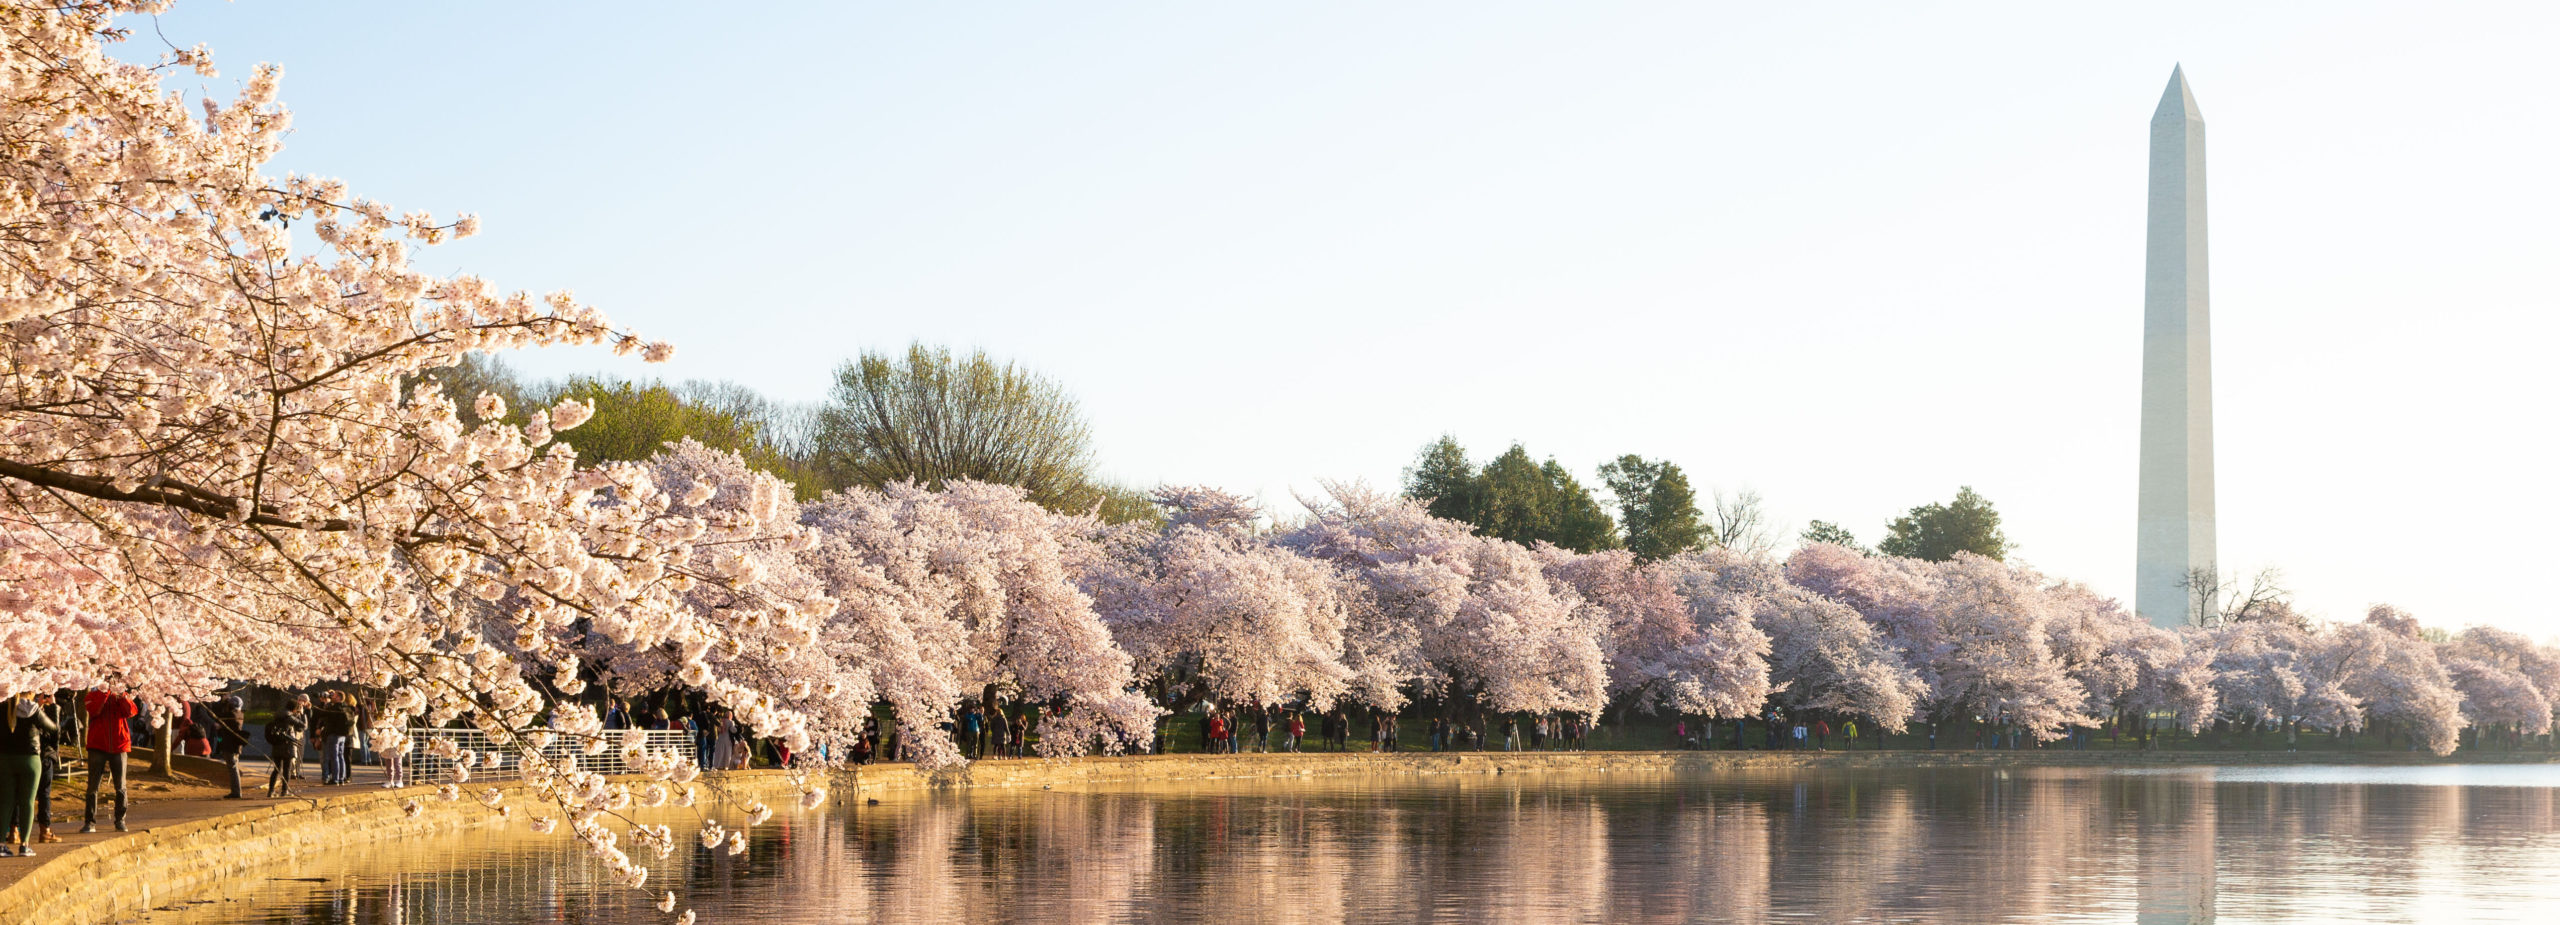 Cherry blossoms in full bloom at the Tidal Basin